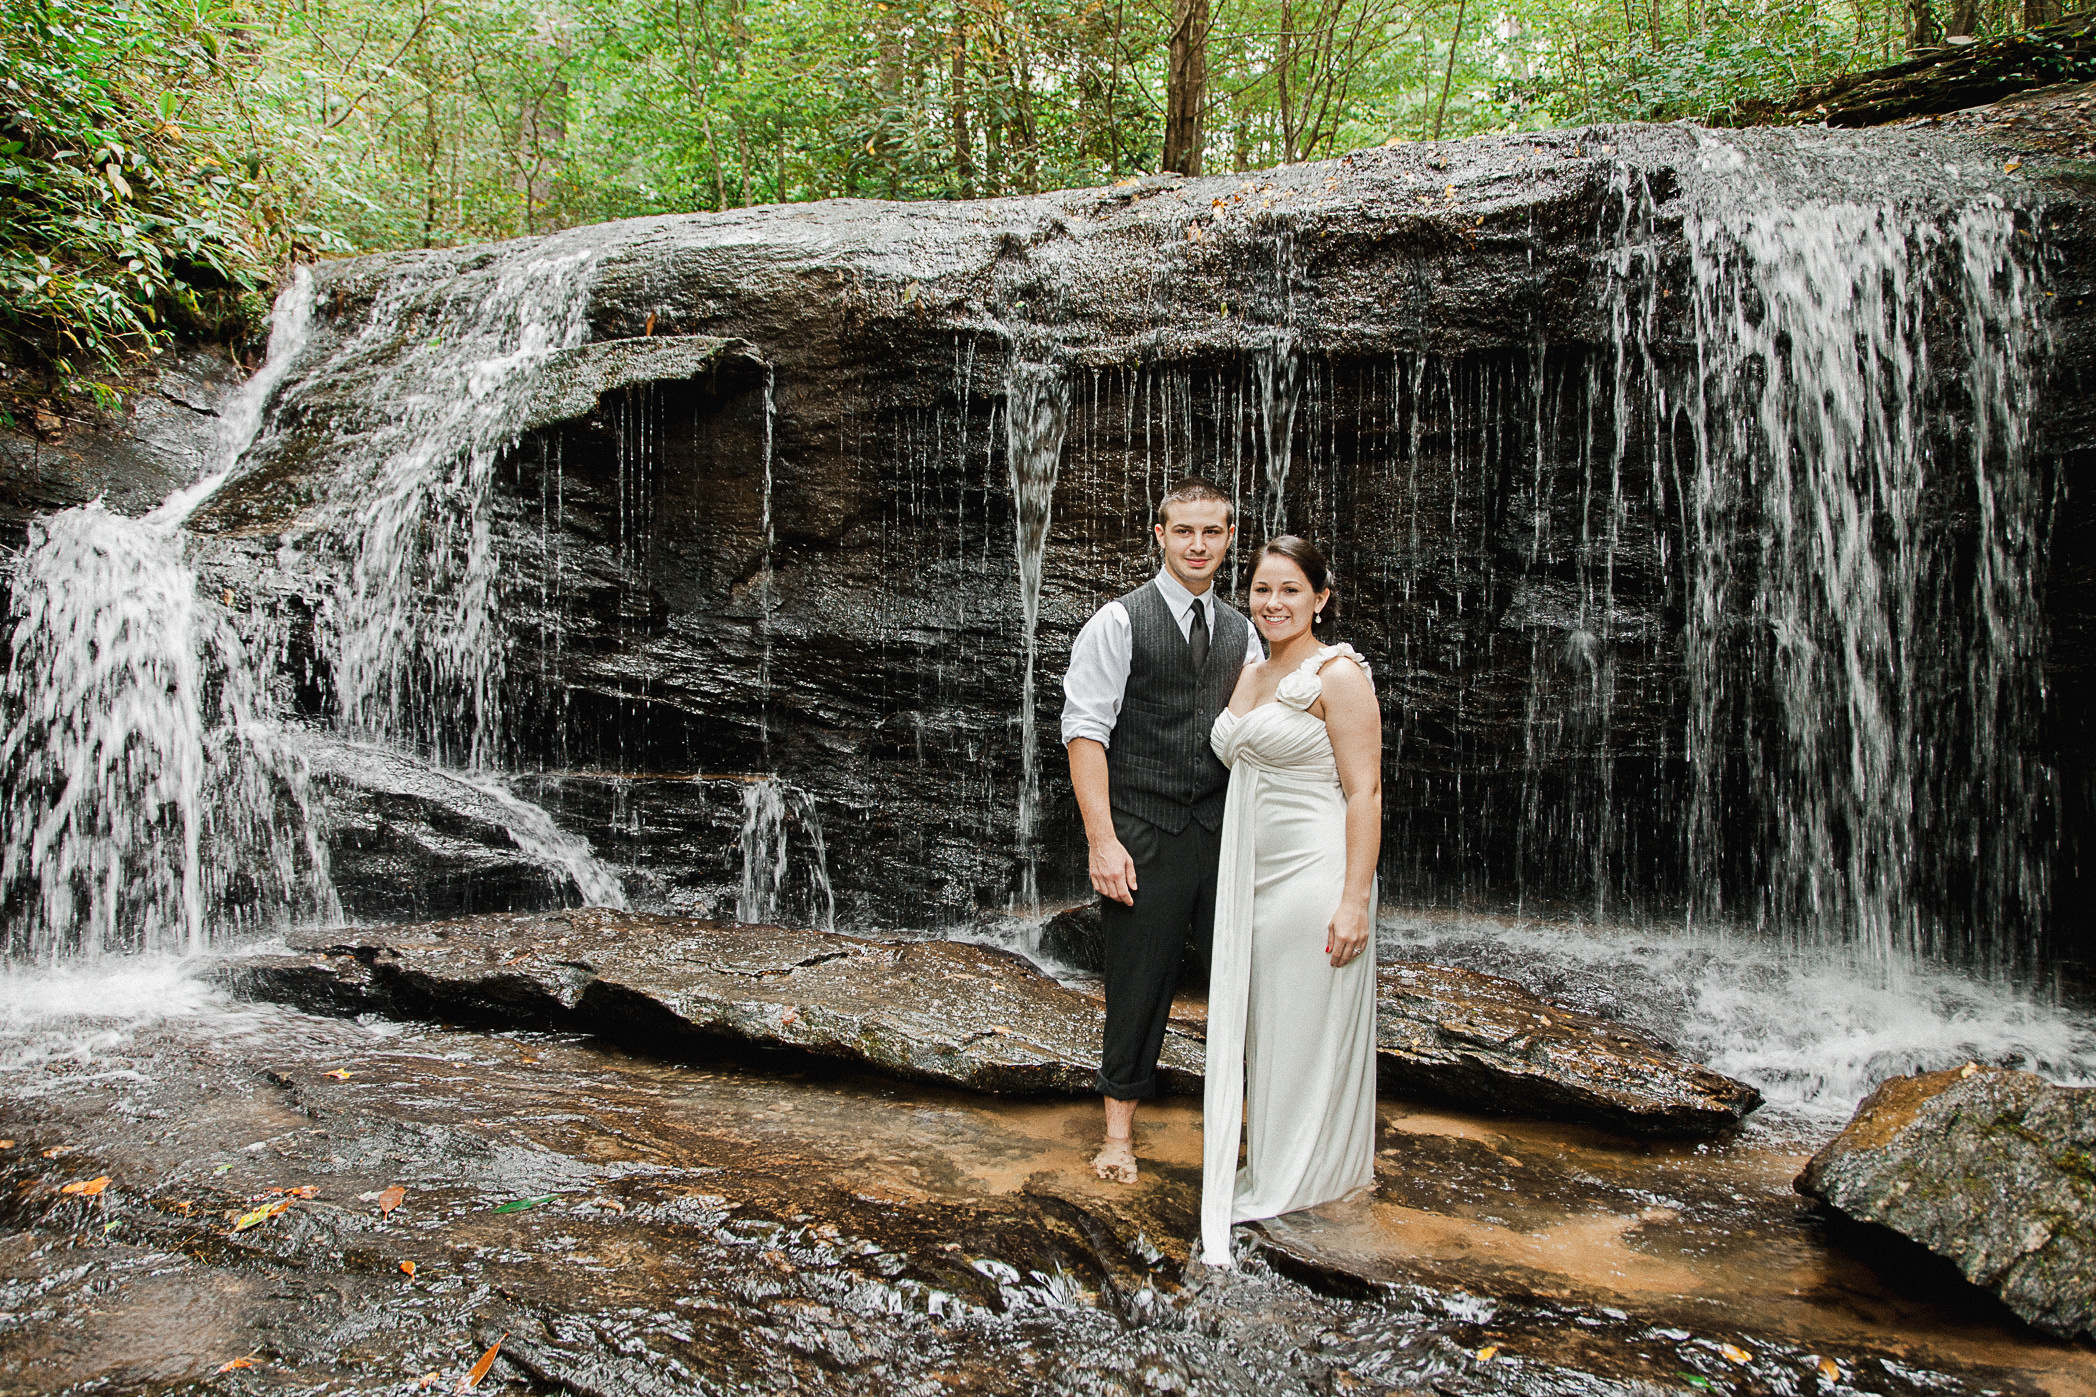 wildcat_falls_wedding (30 of 36).jpg